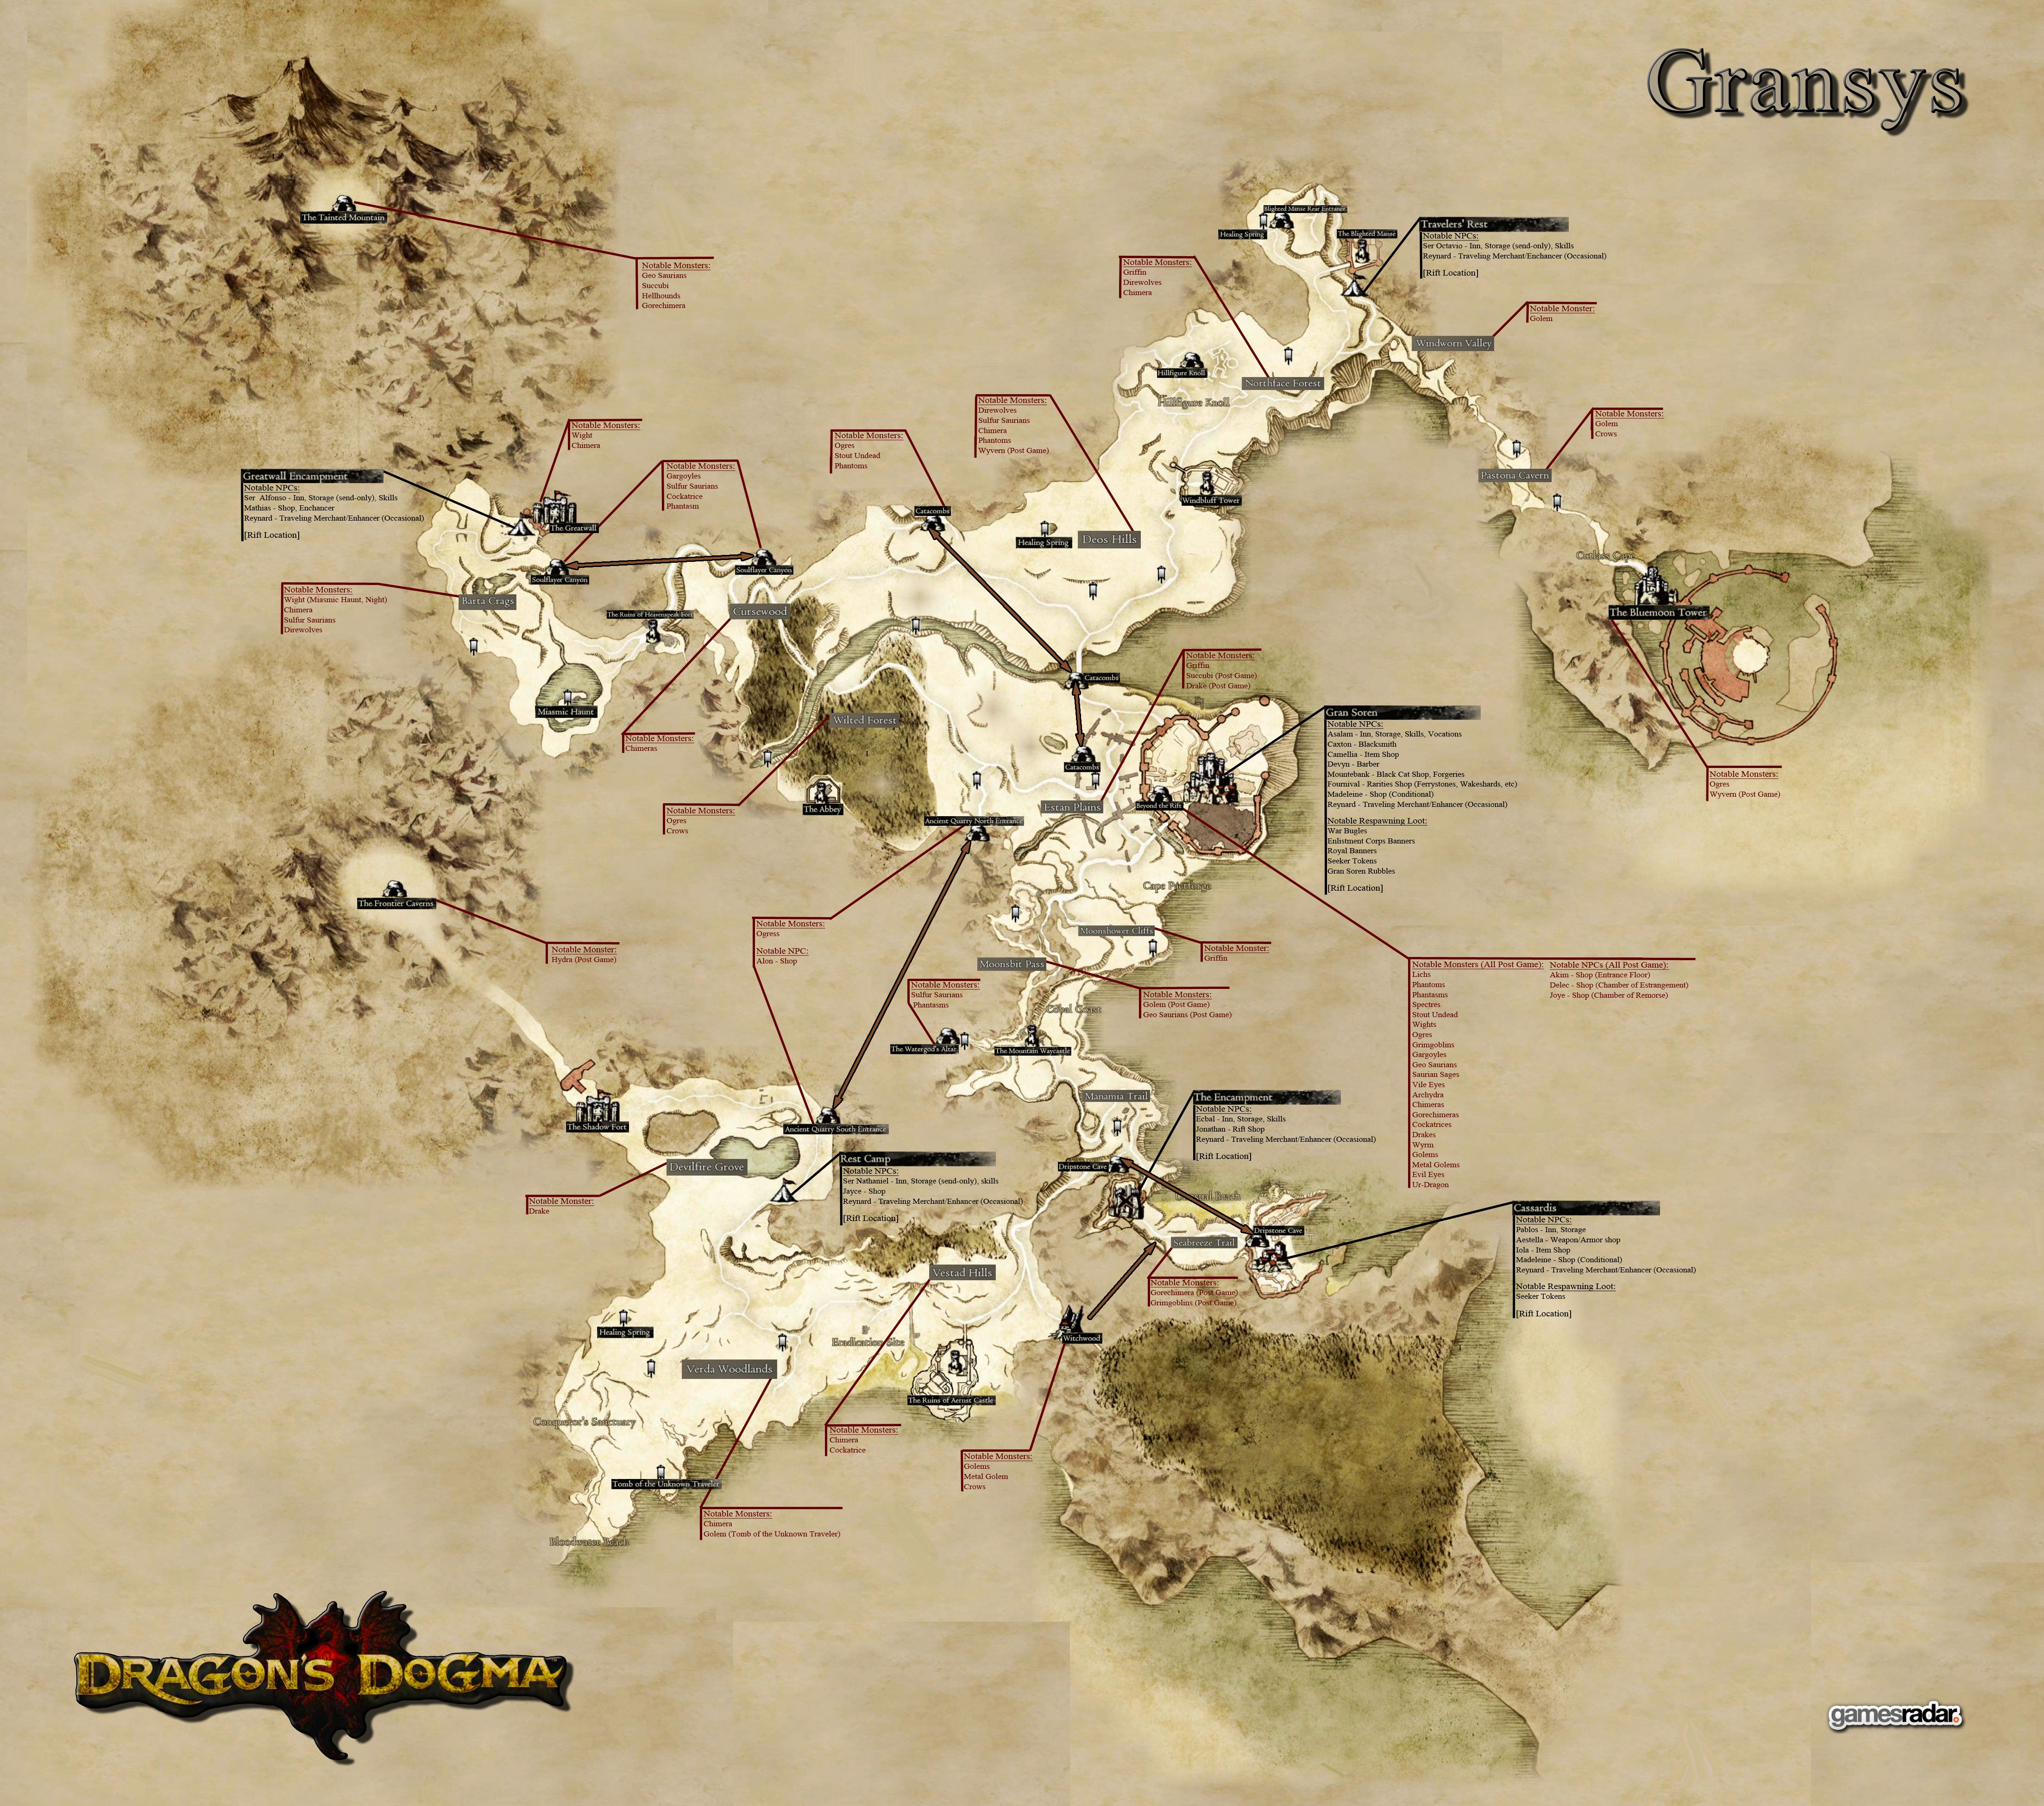 dragons dogma world map - Google Search | Dragon's dogma ... on dark souls map, hyrule warriors map, among the sleep map, l.a. noire map, divinity ii map, fallout new vegas ultimate edition map, valhalla knights 3 map, bound by flame map, lords of the fallen map, medieval total war viking invasion map, skyrim throat of the world map, metal gear solid v: the phantom pain map, fallout 3 map, crimson alliance map, dragon's den map, dragon ball raging blast map, dragon age: inquisition map, conker's bad fur day map, the elder scrolls v: skyrim map, tales of zestiria map,